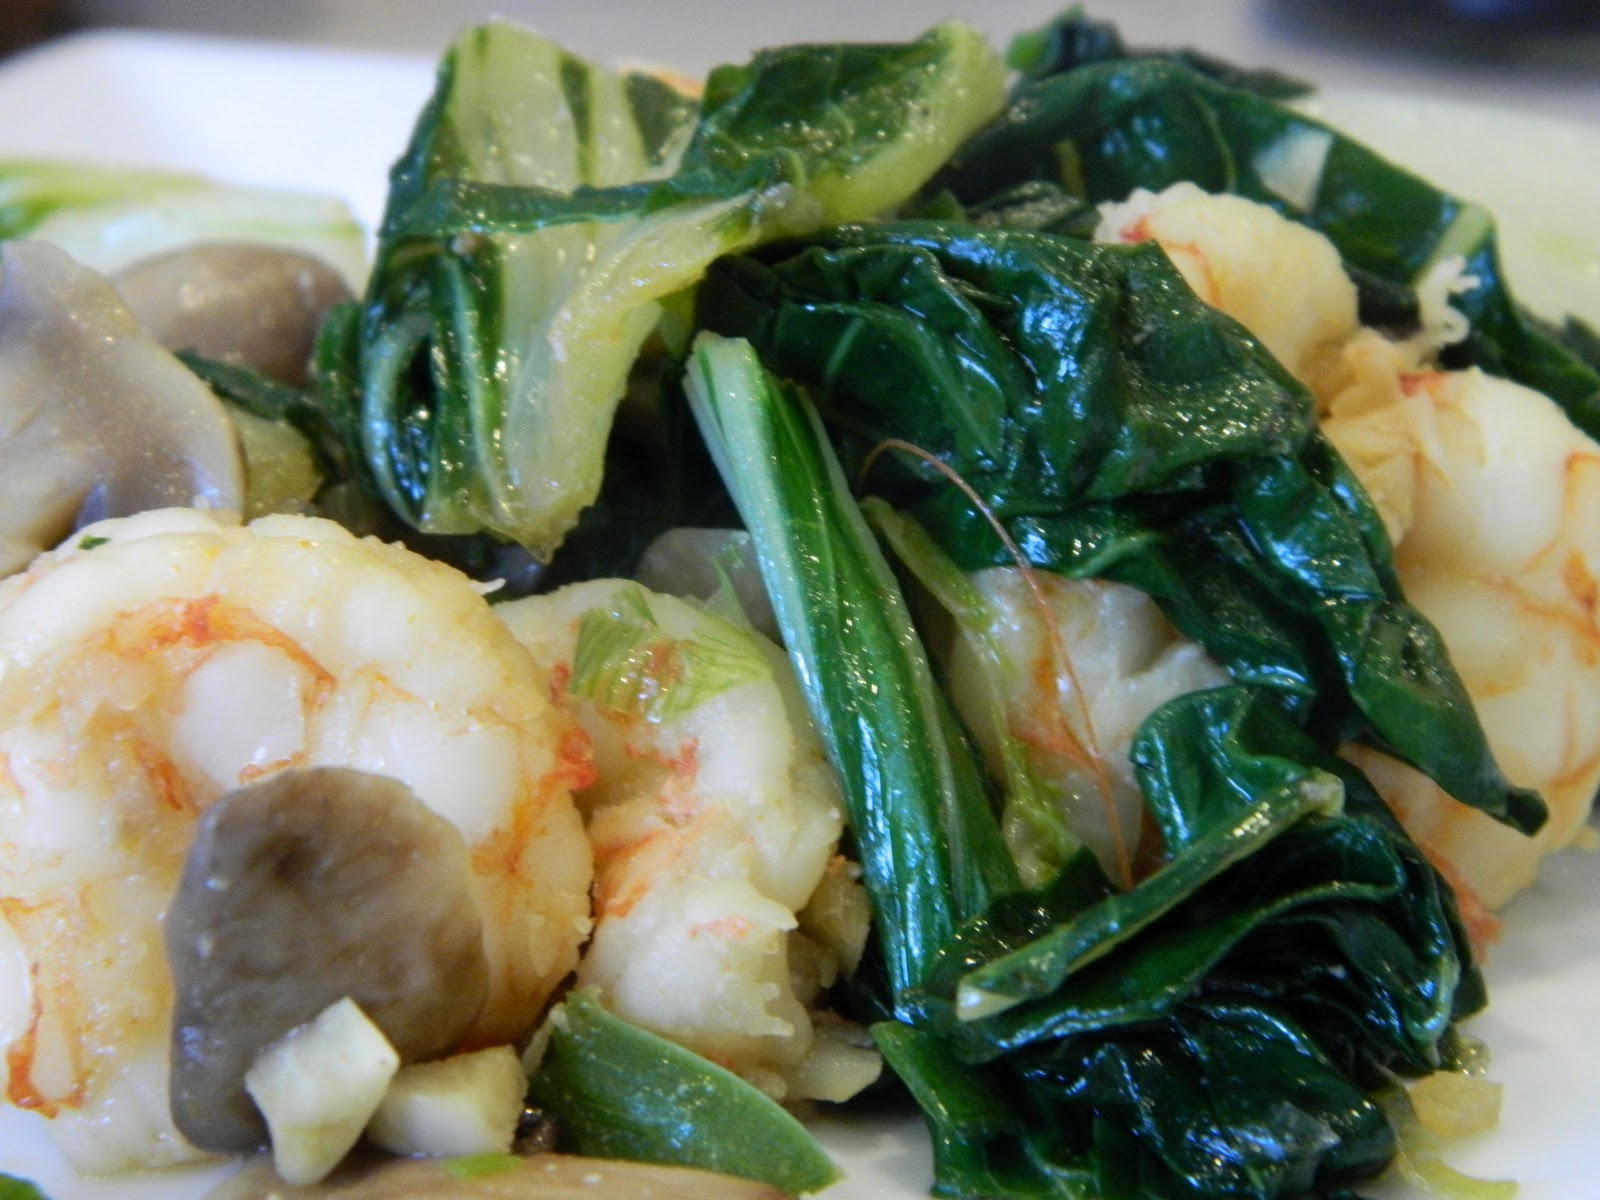 Spicy shrimp and vegetable stir-fry: one of my favorite meals to make!